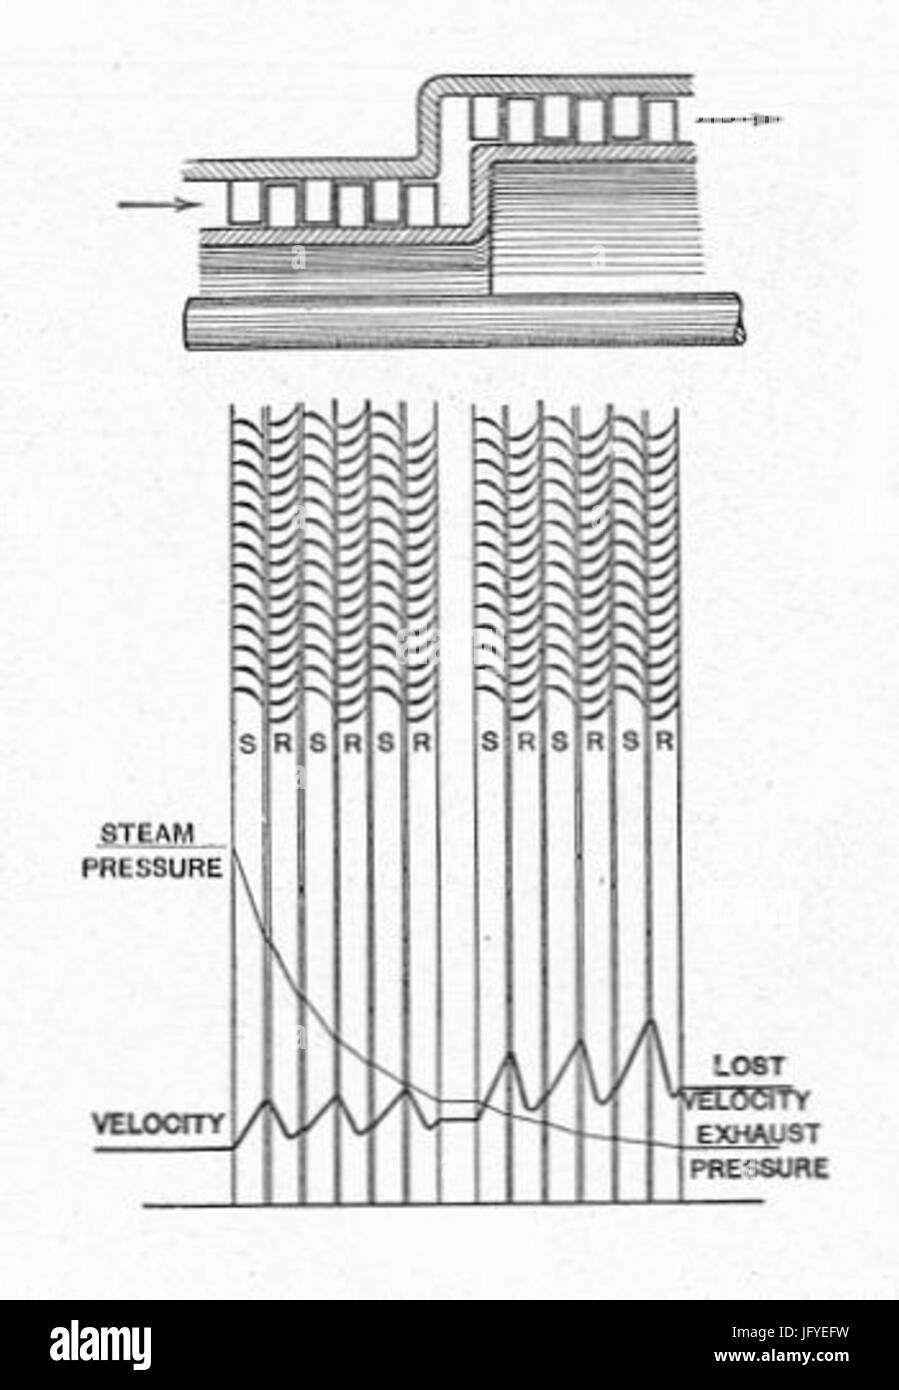 hight resolution of curtis rateau turbine pressure velocity diagram 28heat engines 191329